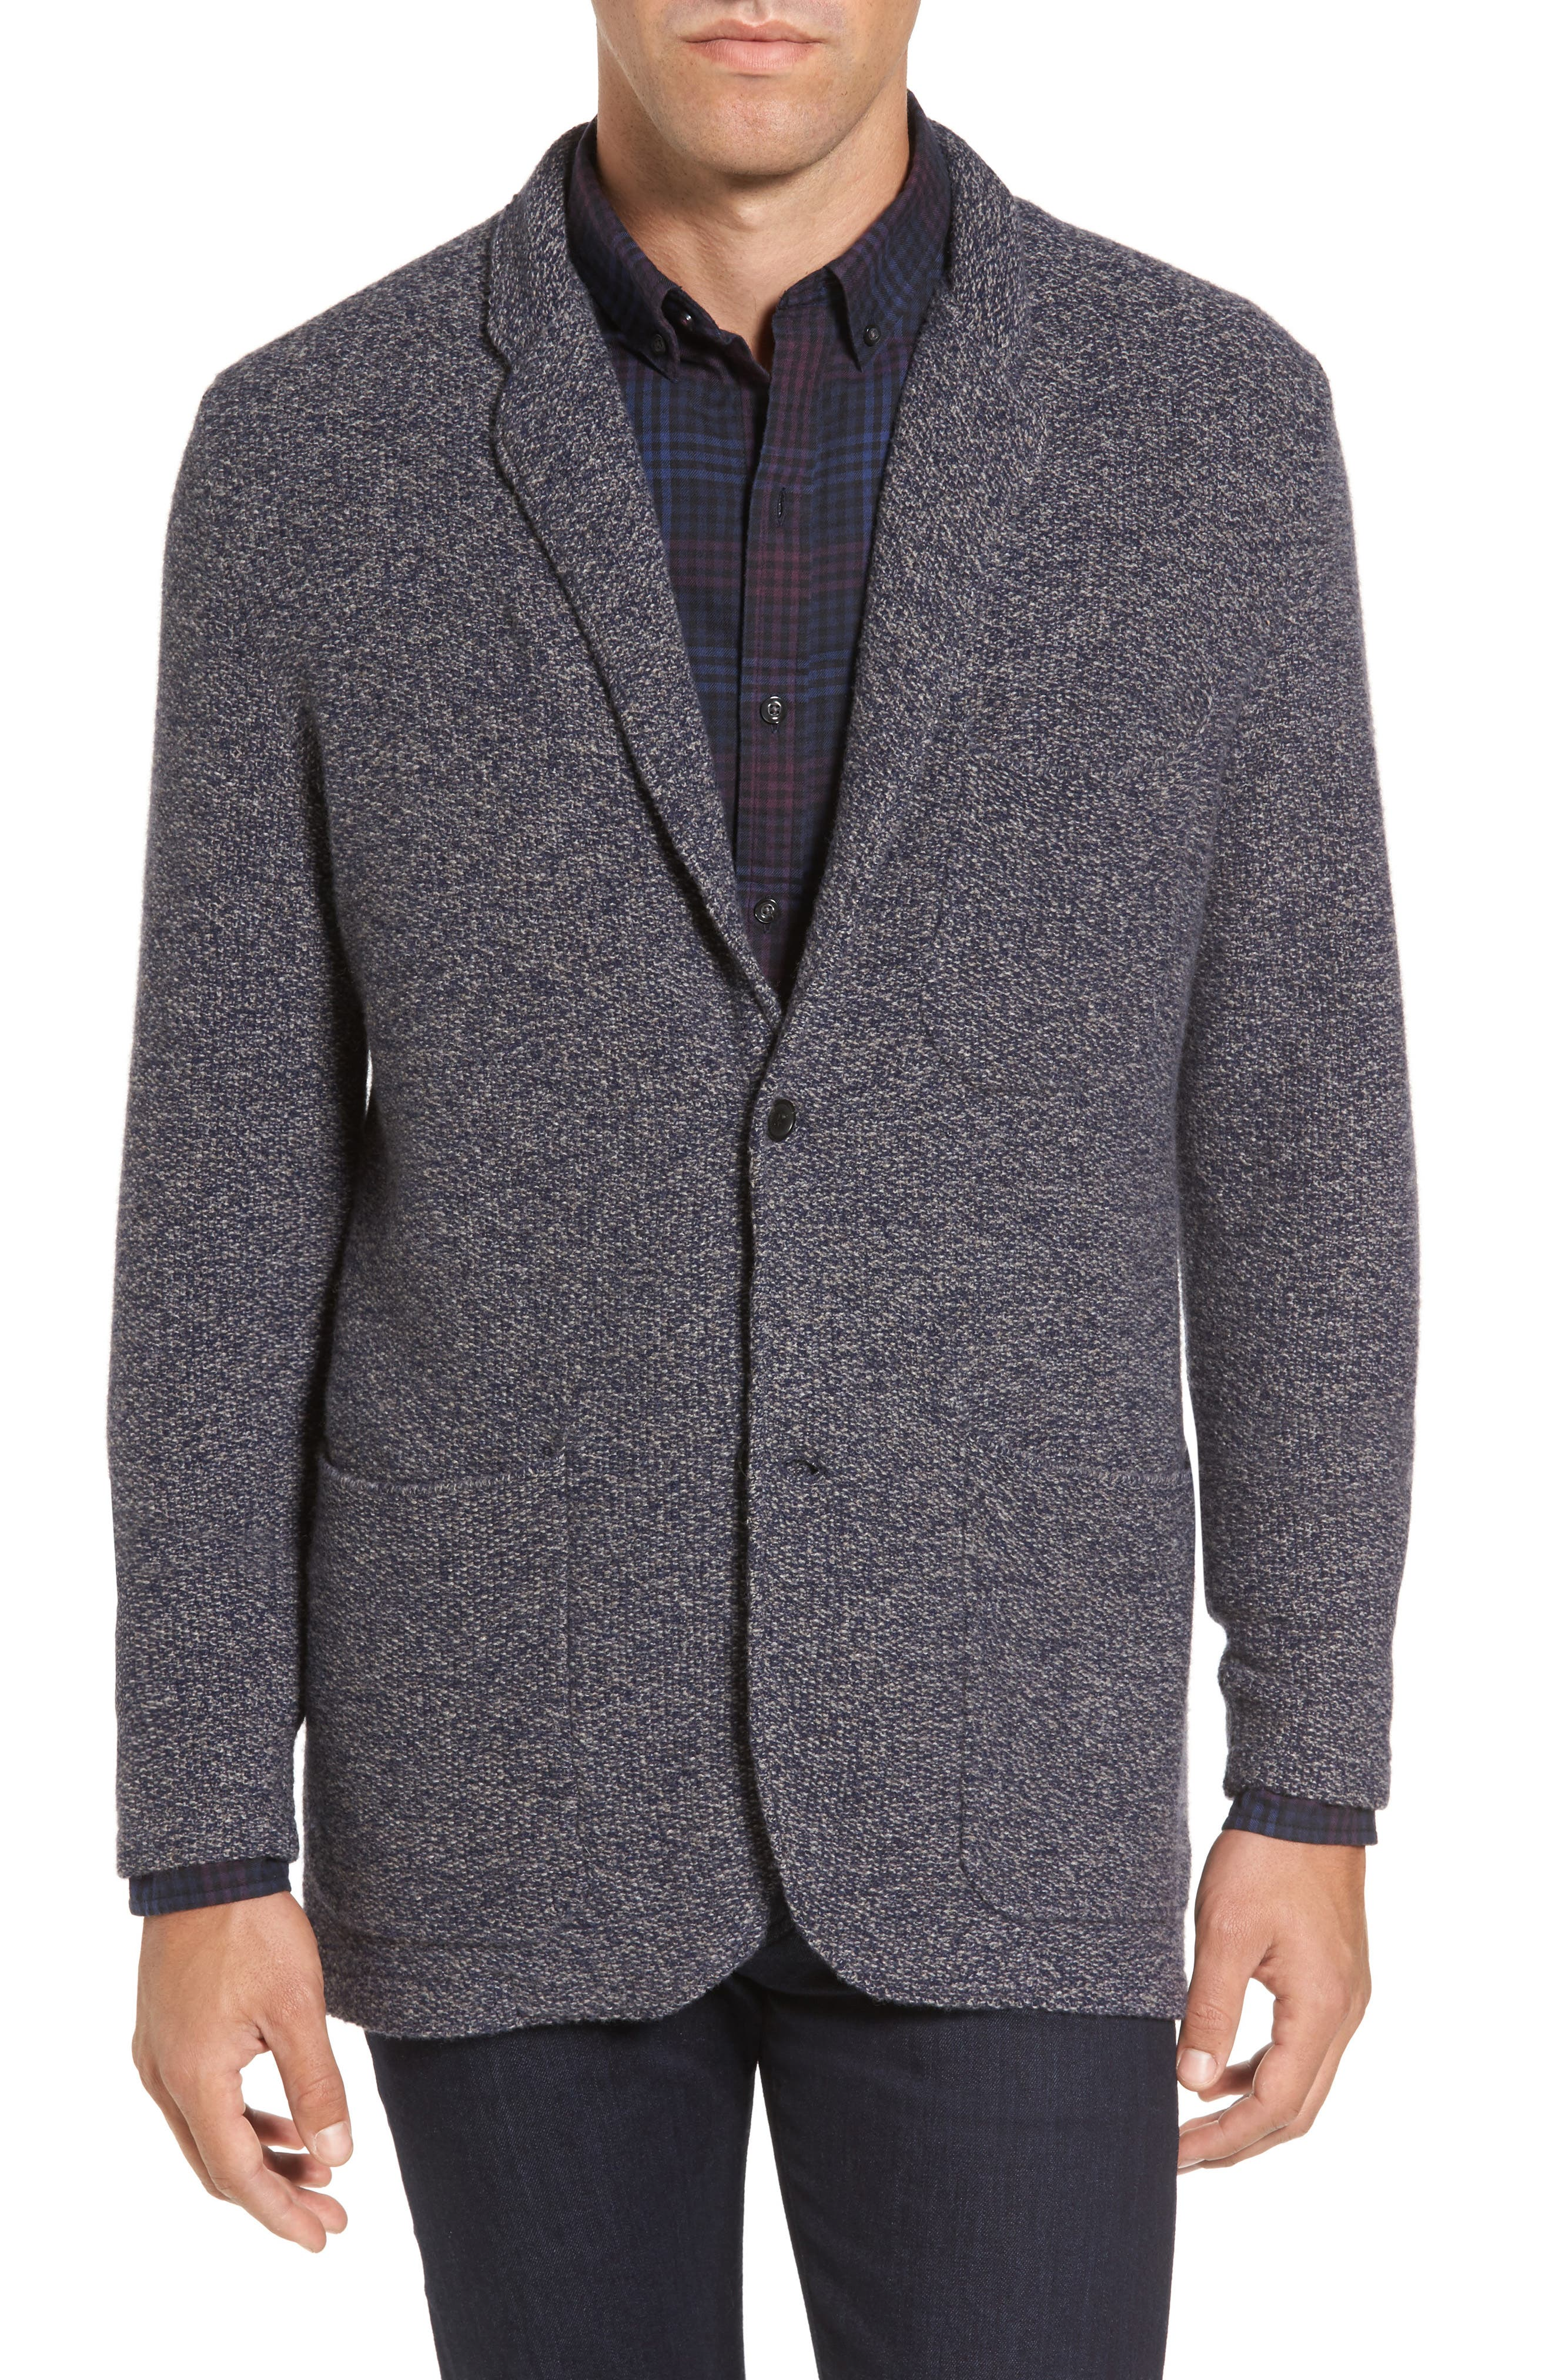 Deconstructed Merino & Yak Wool Sweater Jacket,                         Main,                         color,